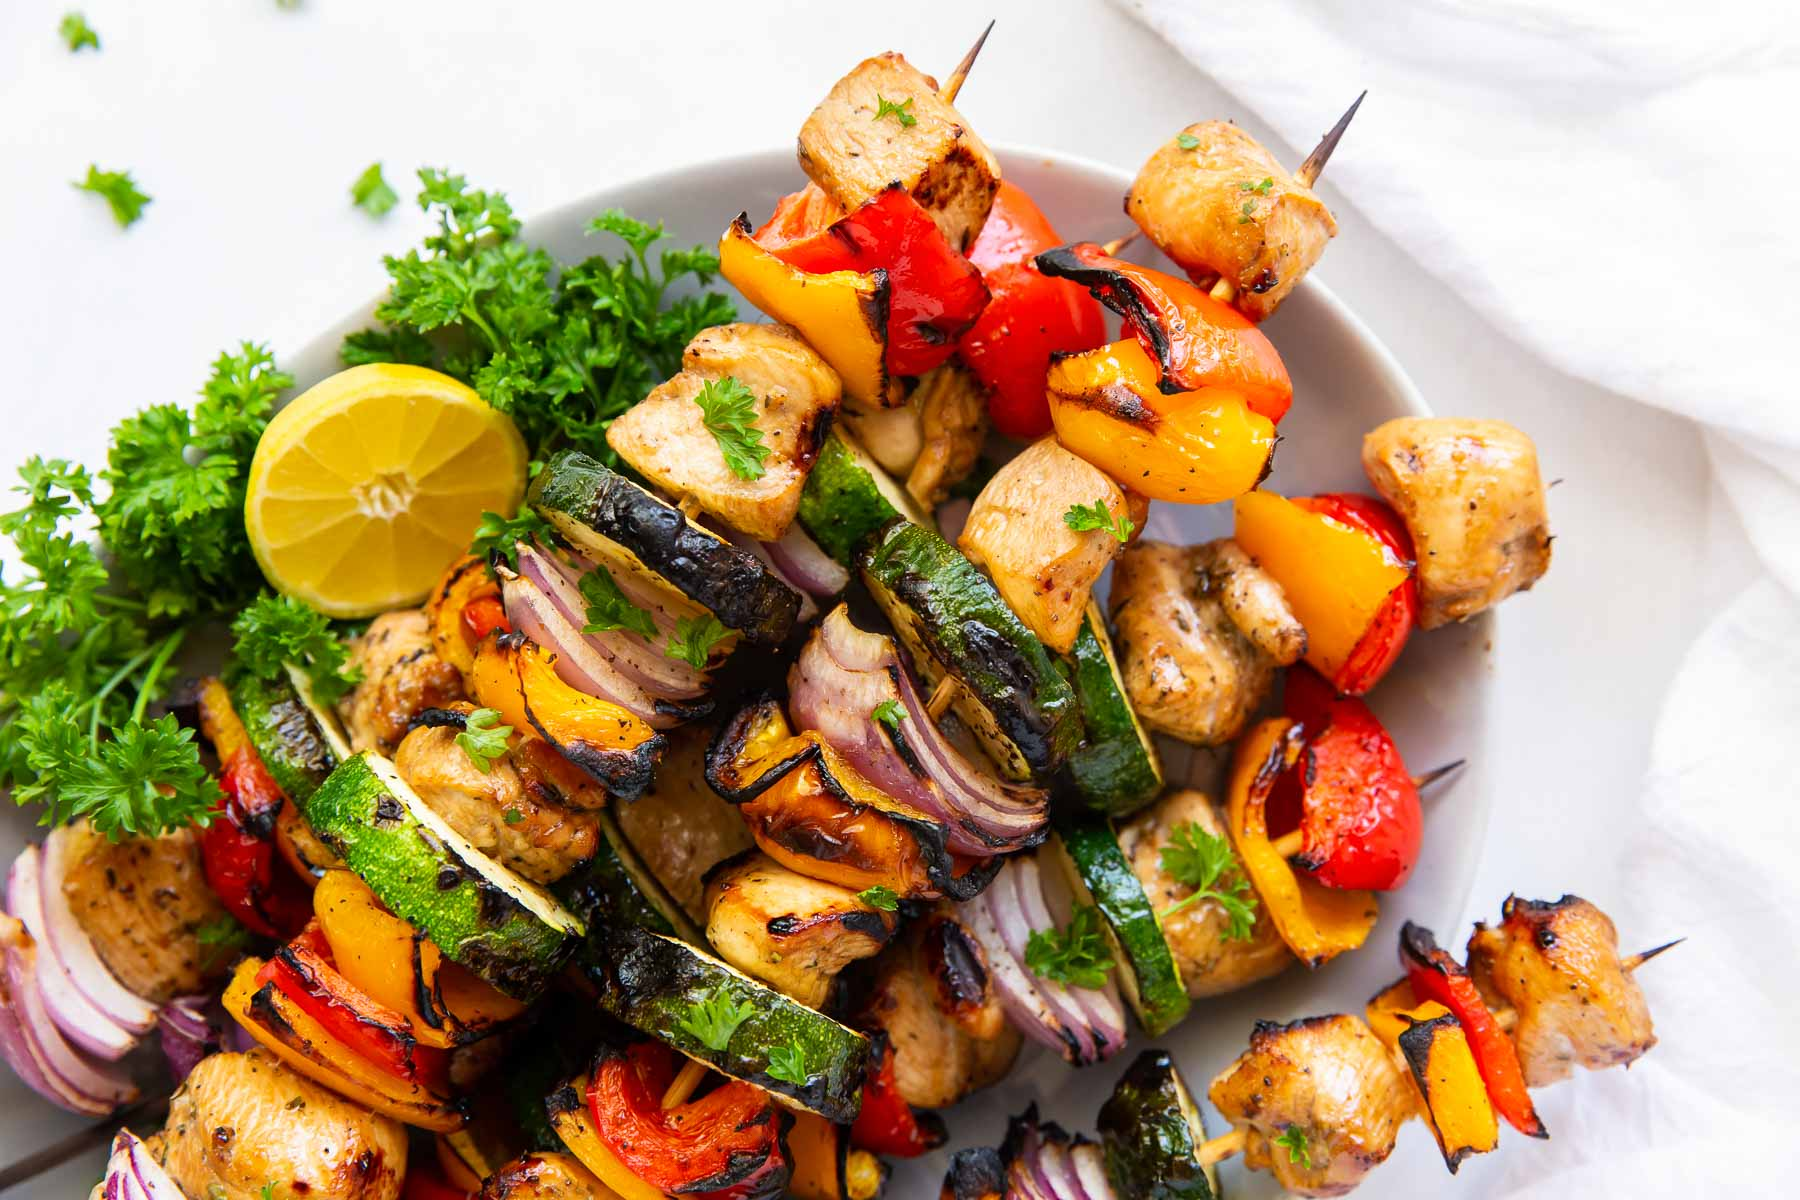 cooked shish kabobs with grilled chicken, red onion, bell peppers and zucchini stacked on a plate